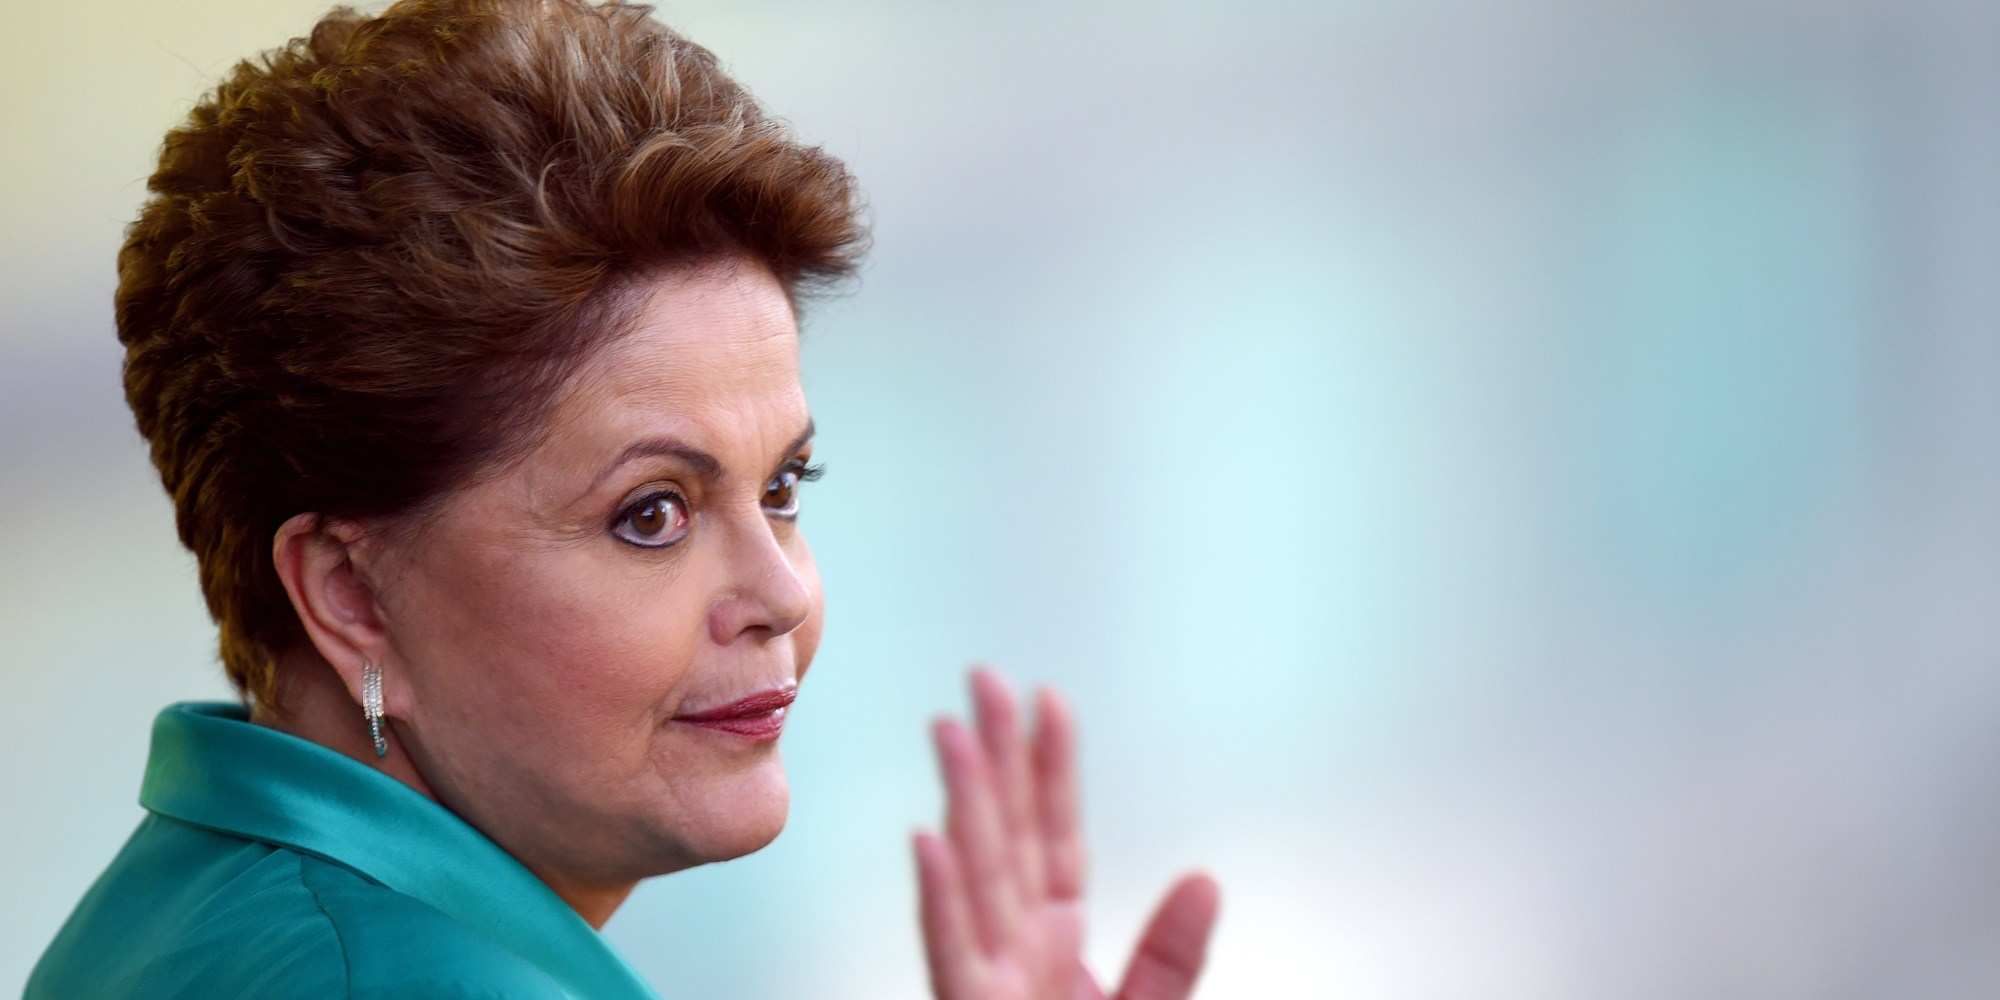 BRAZIL-ELECTIONS-CAMPAIGN-ROUSSEFF